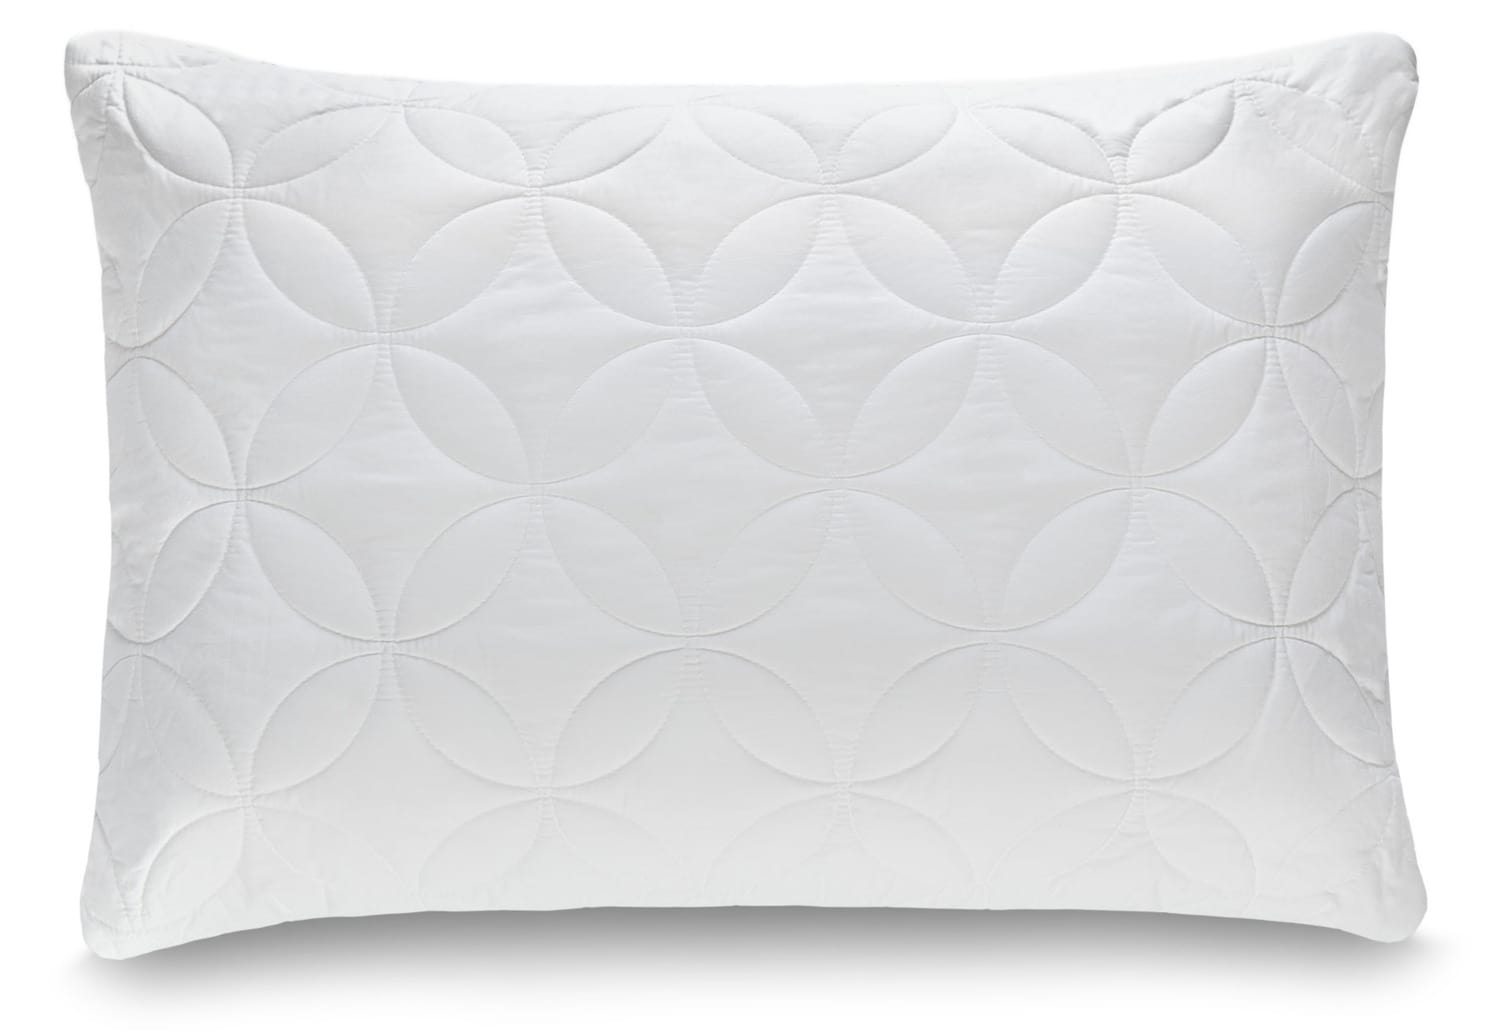 Tempur-Pedic™ Soft and Conforming Queen Size Pillow